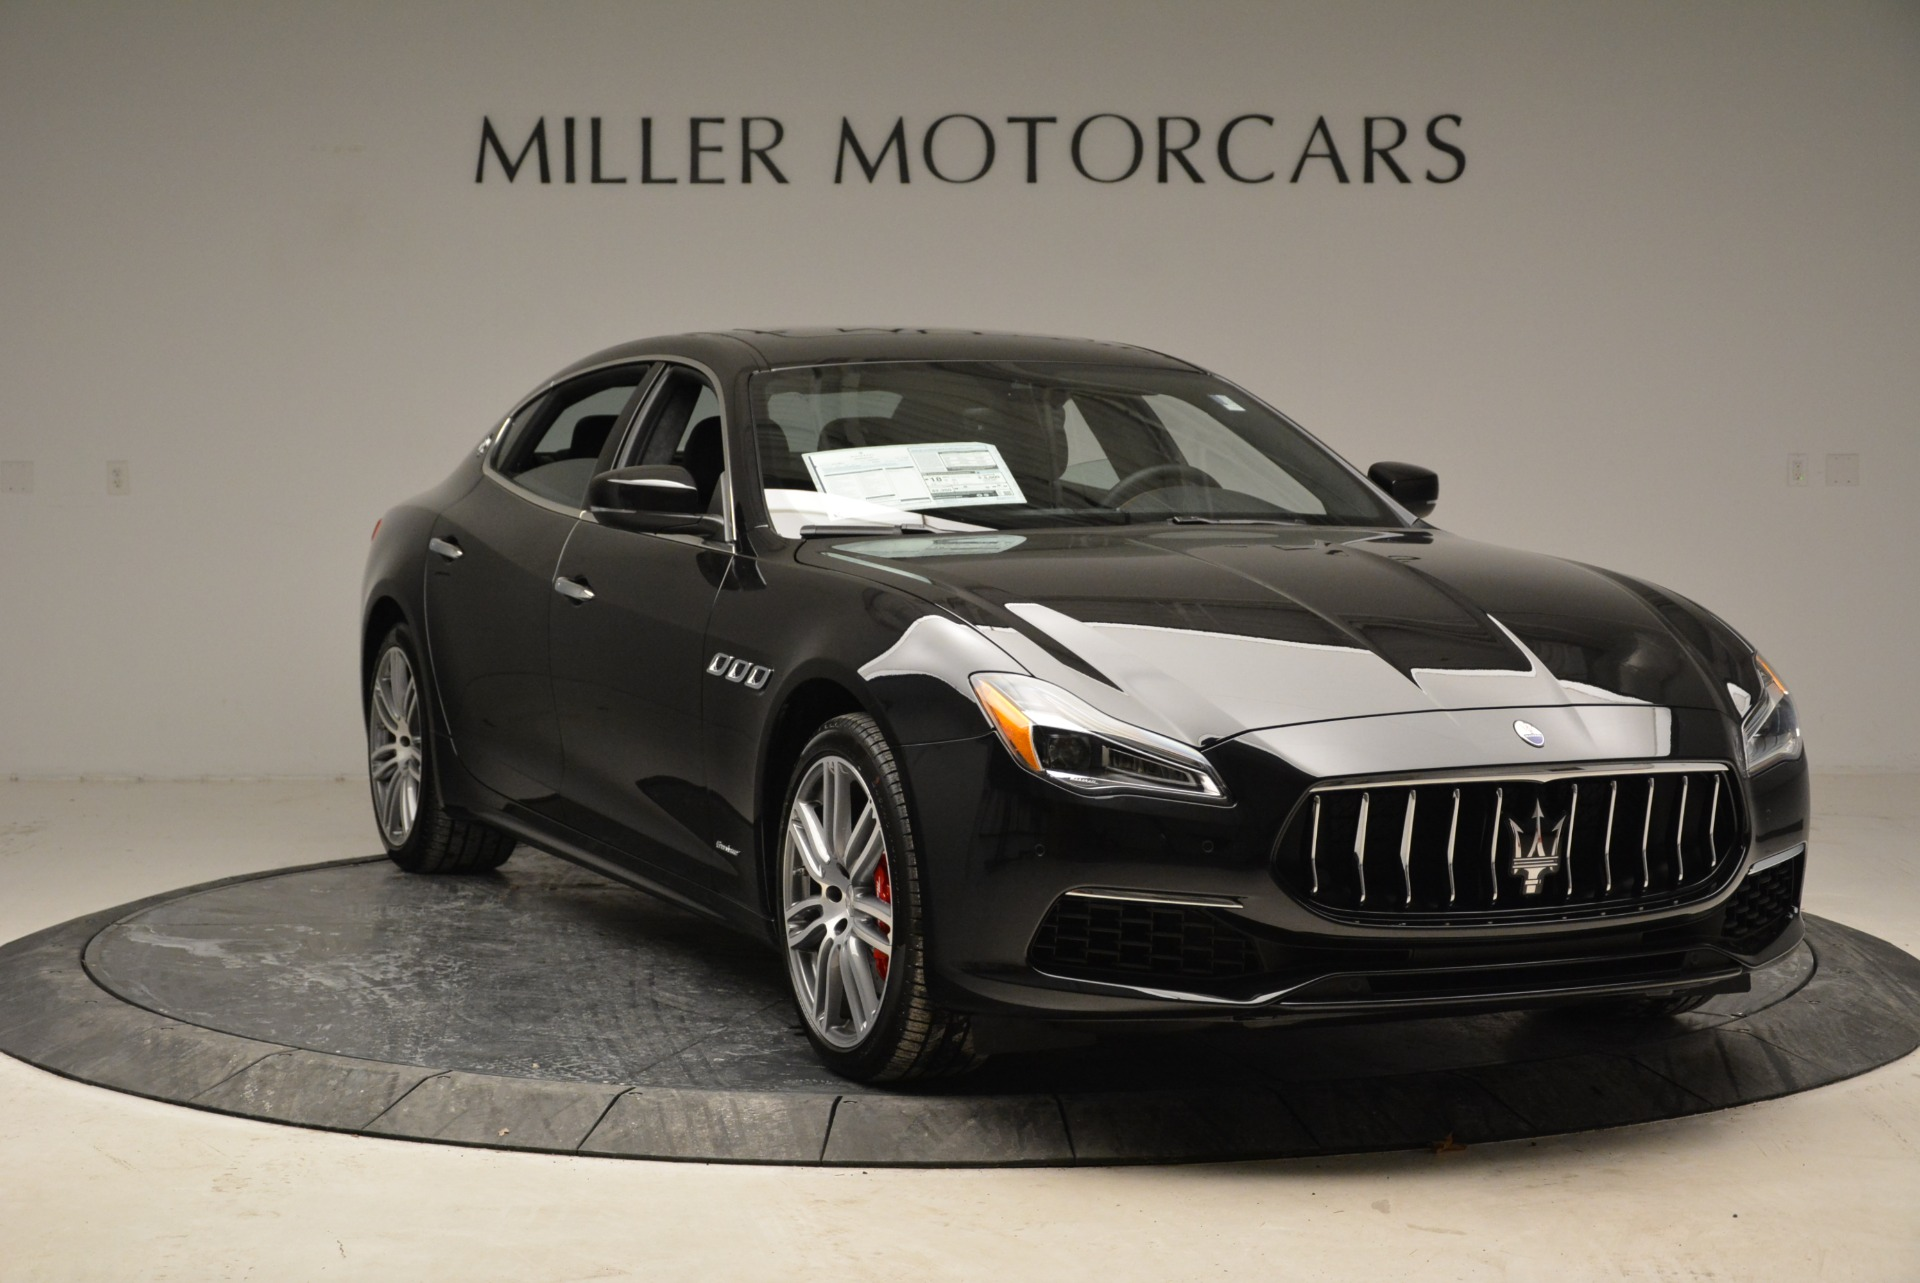 New 2018 Maserati Quattroporte S Q4 GranLusso For Sale In Greenwich, CT 1974_p11